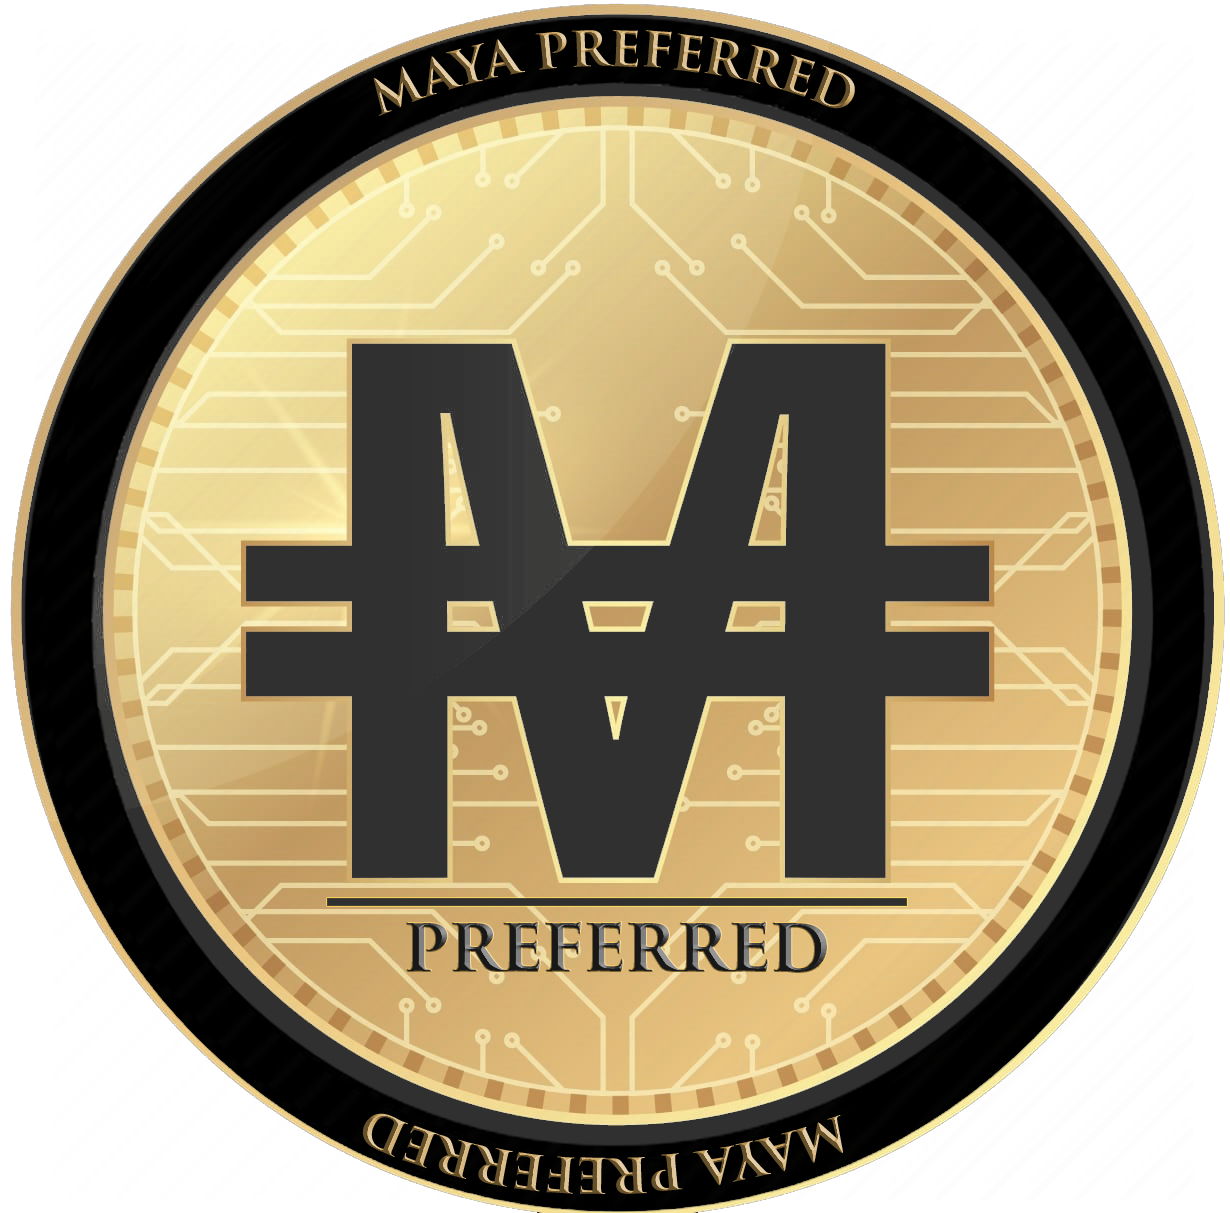 Maya Preferred 223 (MAPR) works with the Mexican Government to change cryptocurrency laws in Mexico